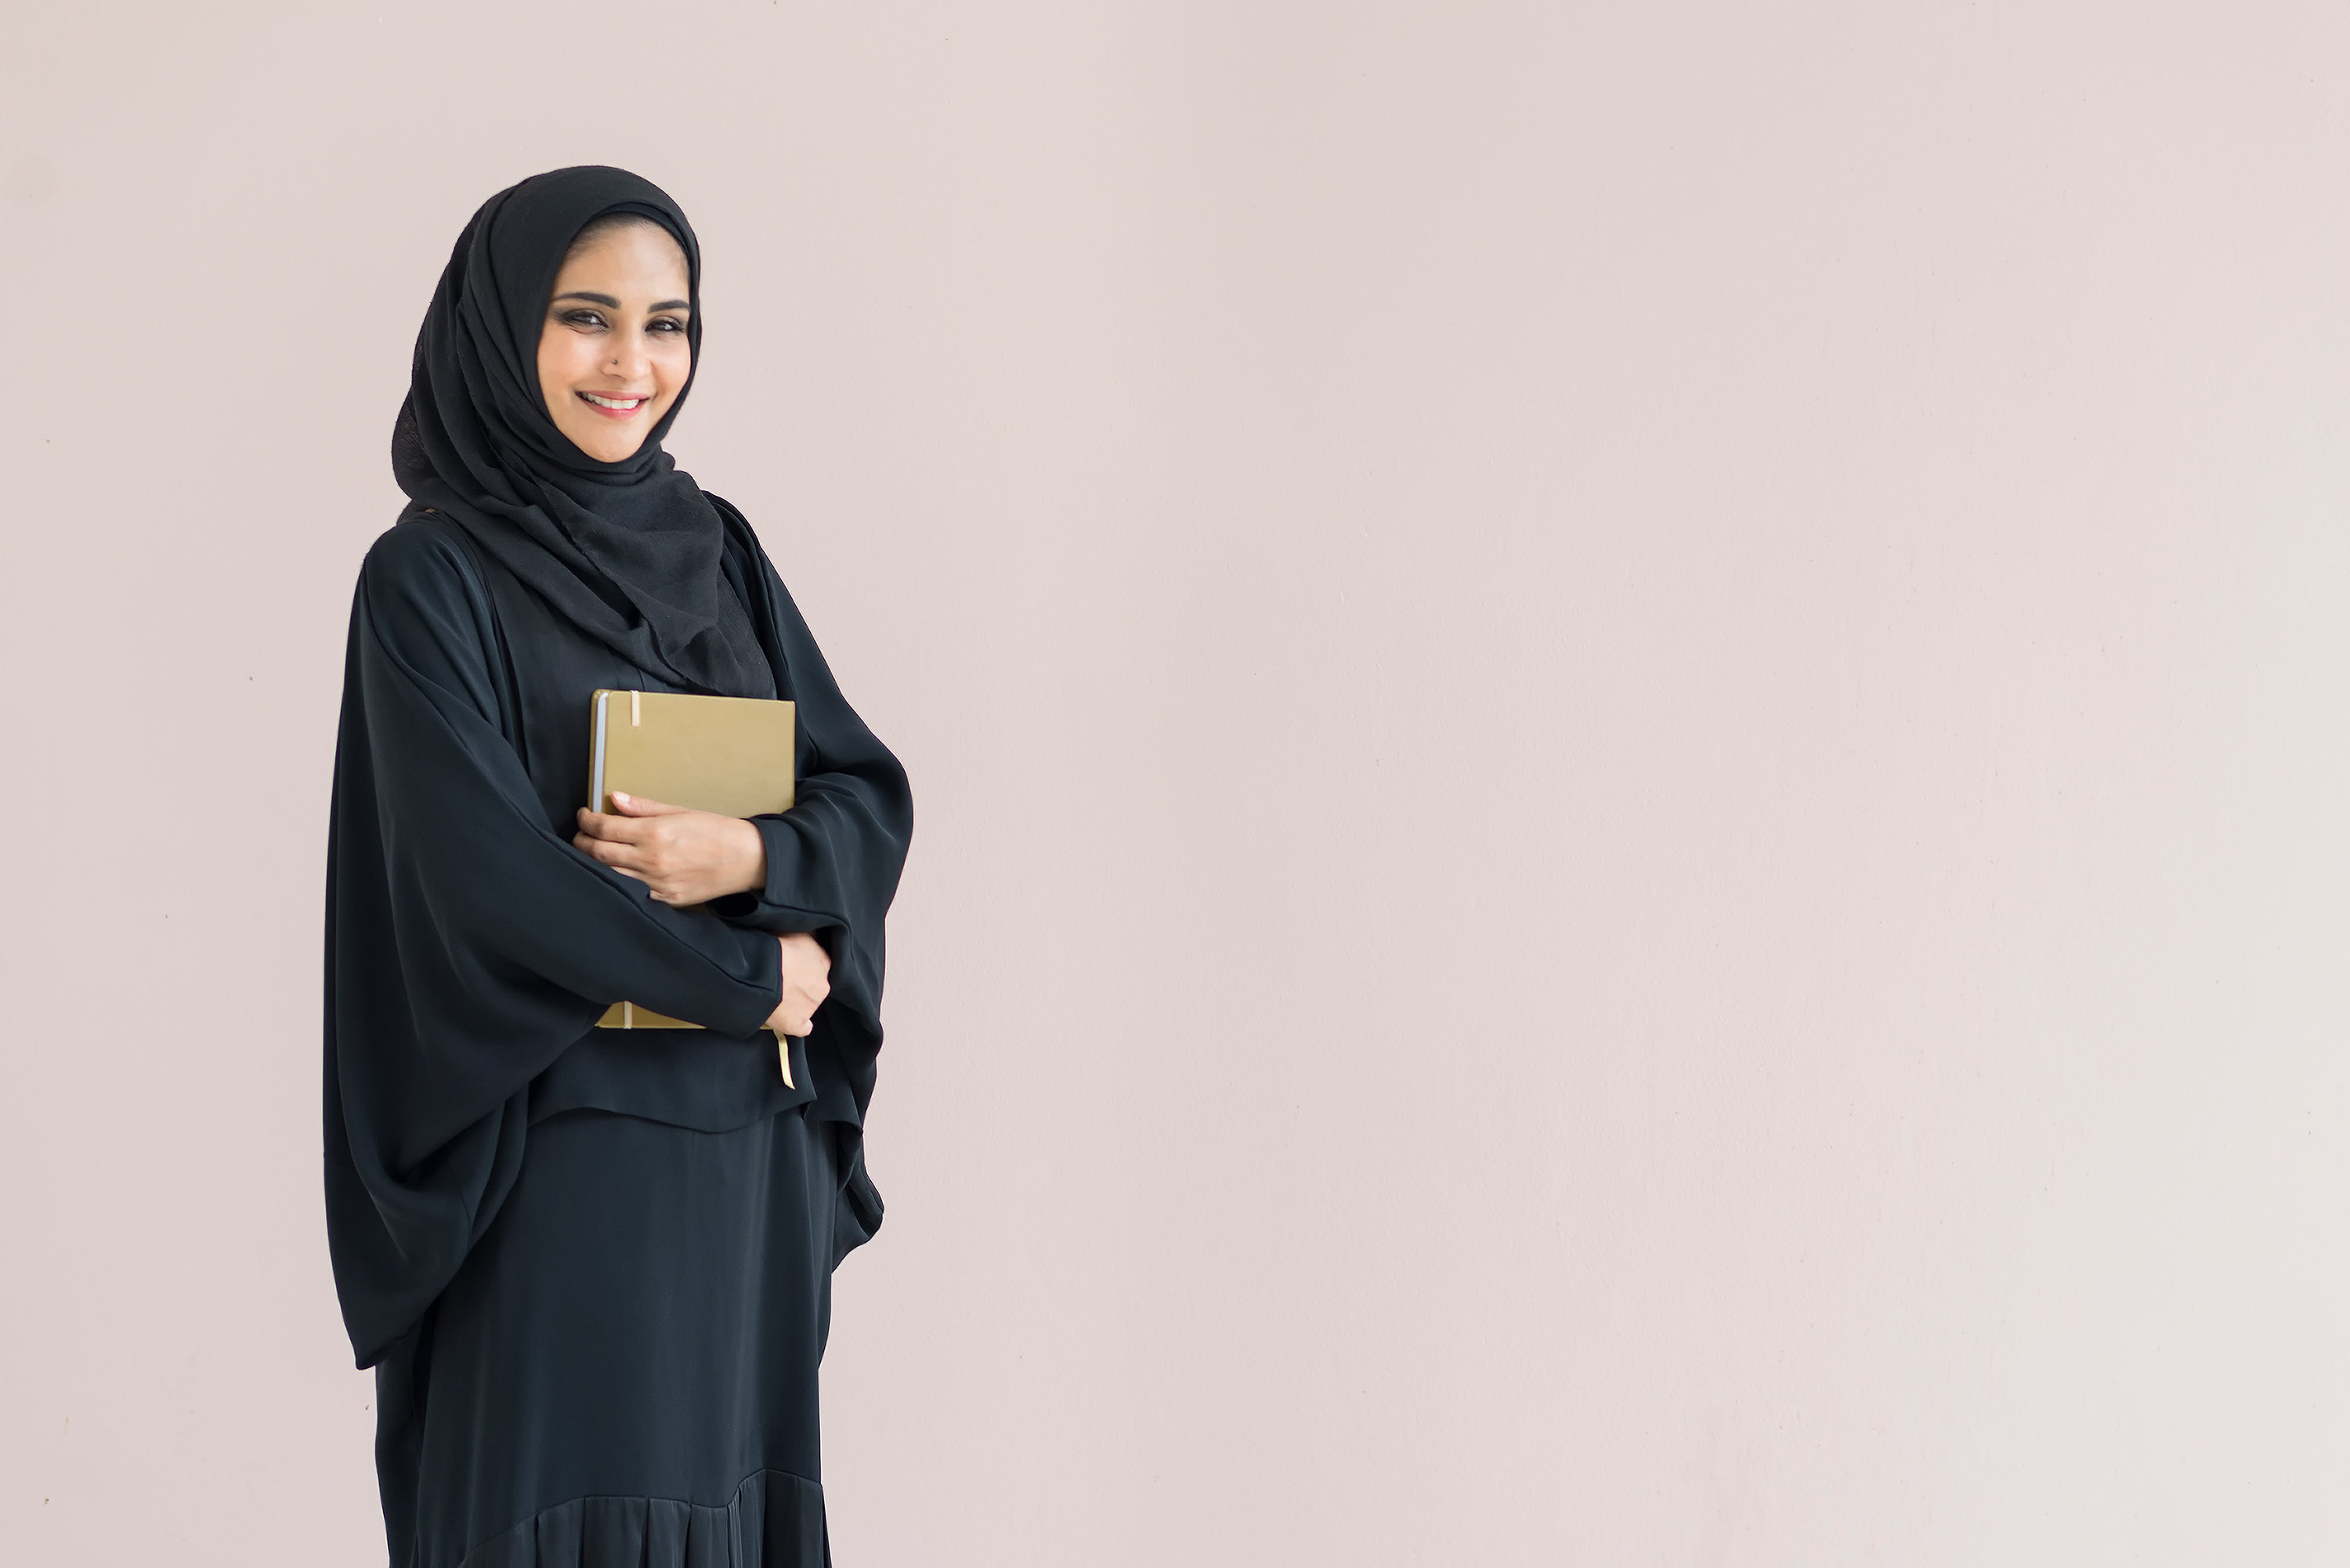 Arabian woman standing and holding a book